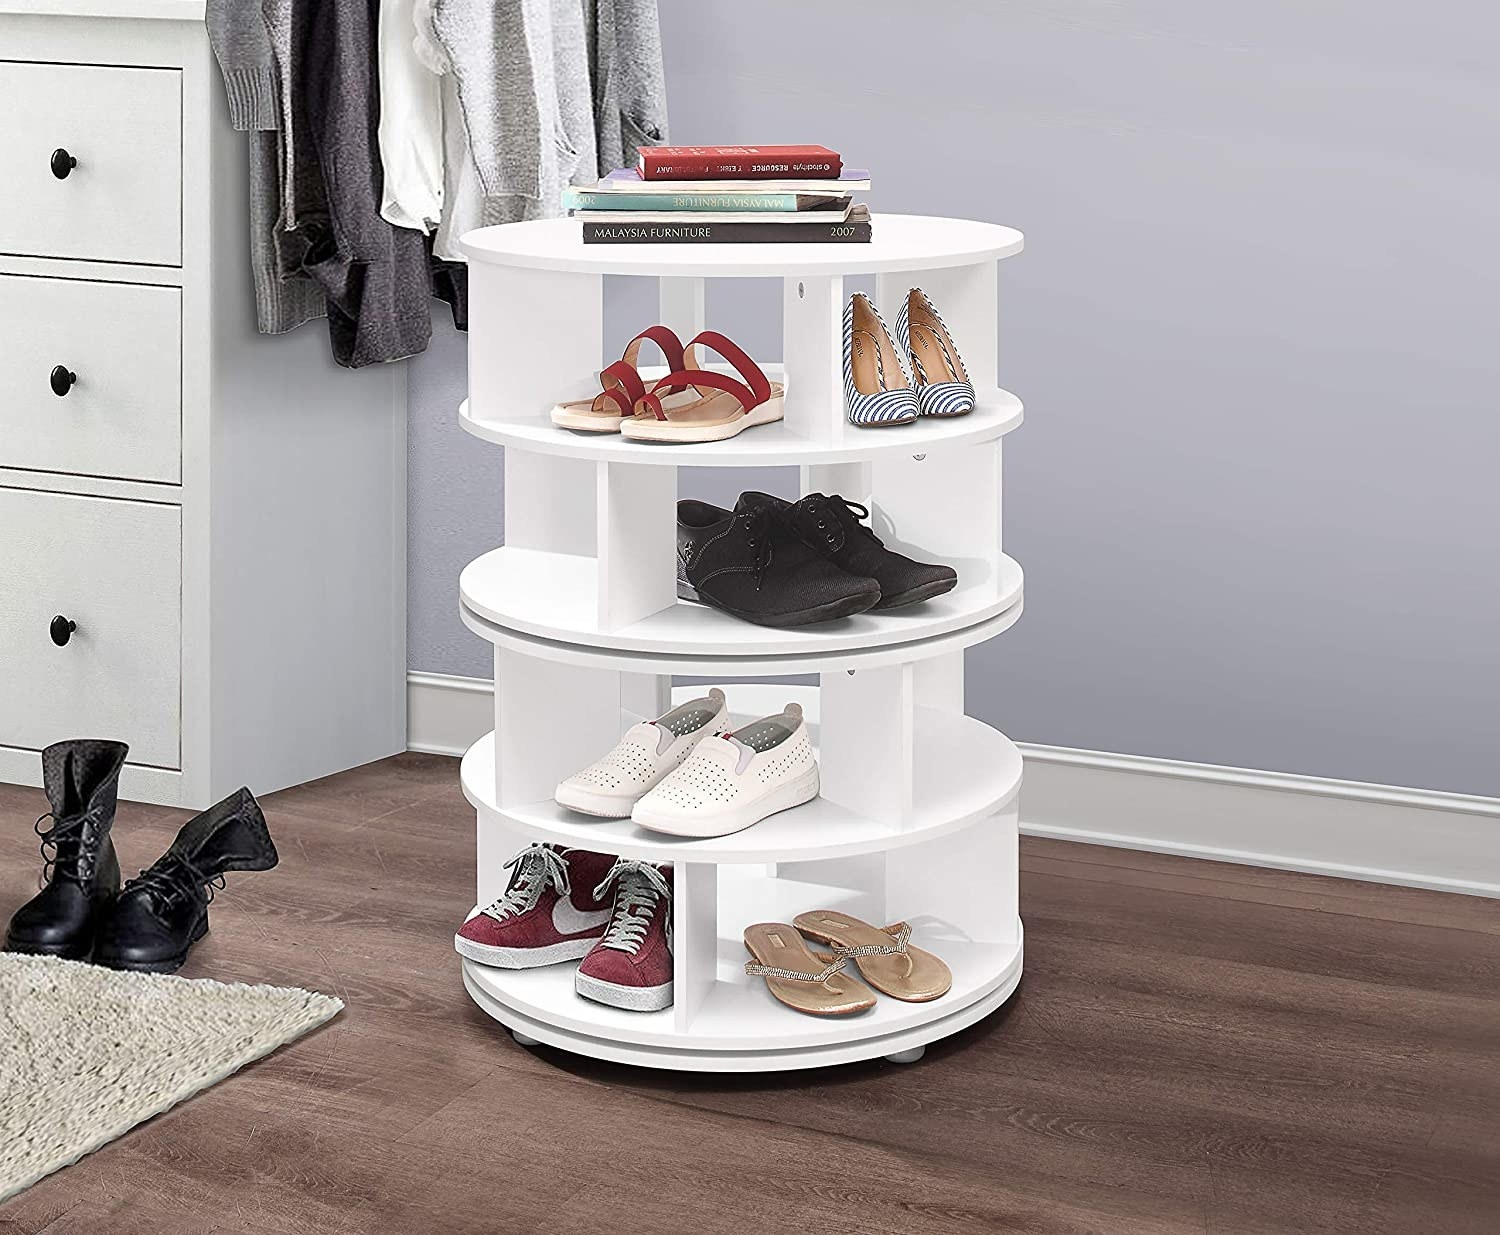 The lazy susan shoe holder with four shelves